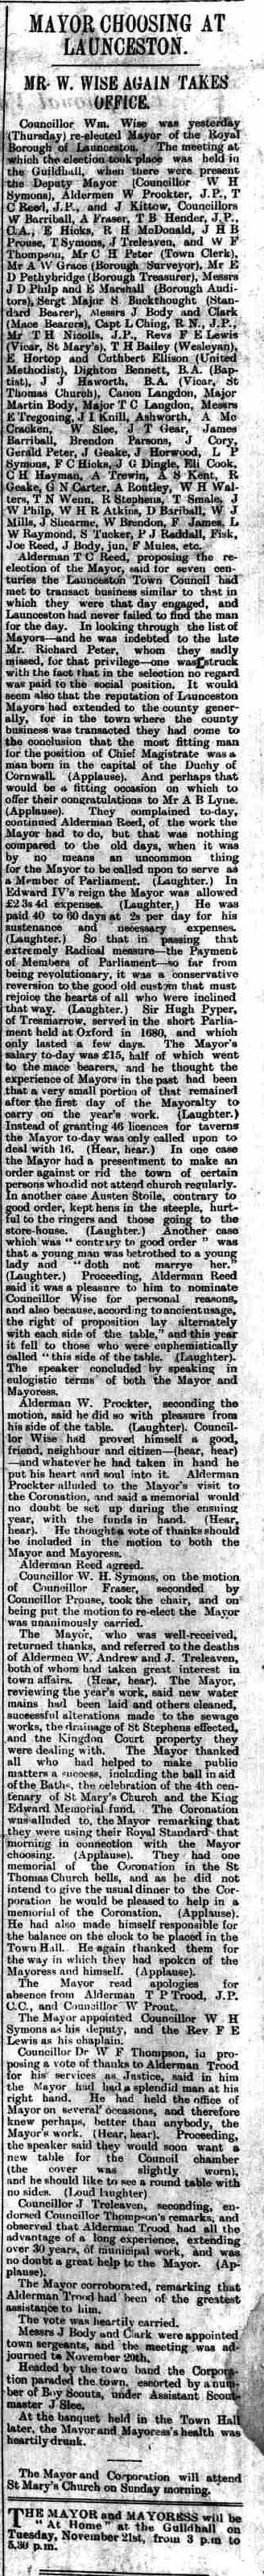 Launceston Mayor choosing report 11 November 1911